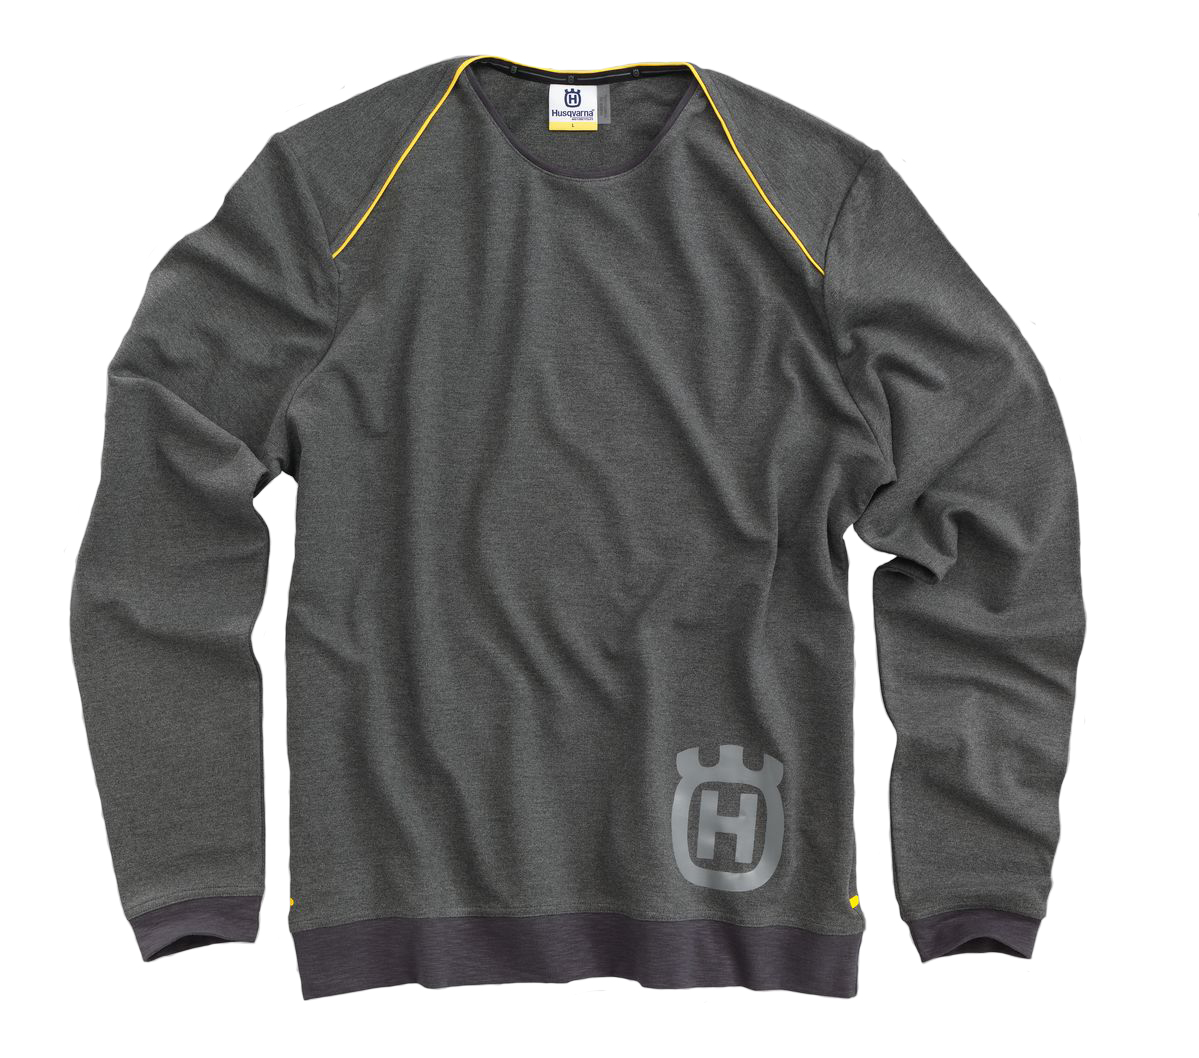 Genuine Husqvarna Progress Sweater